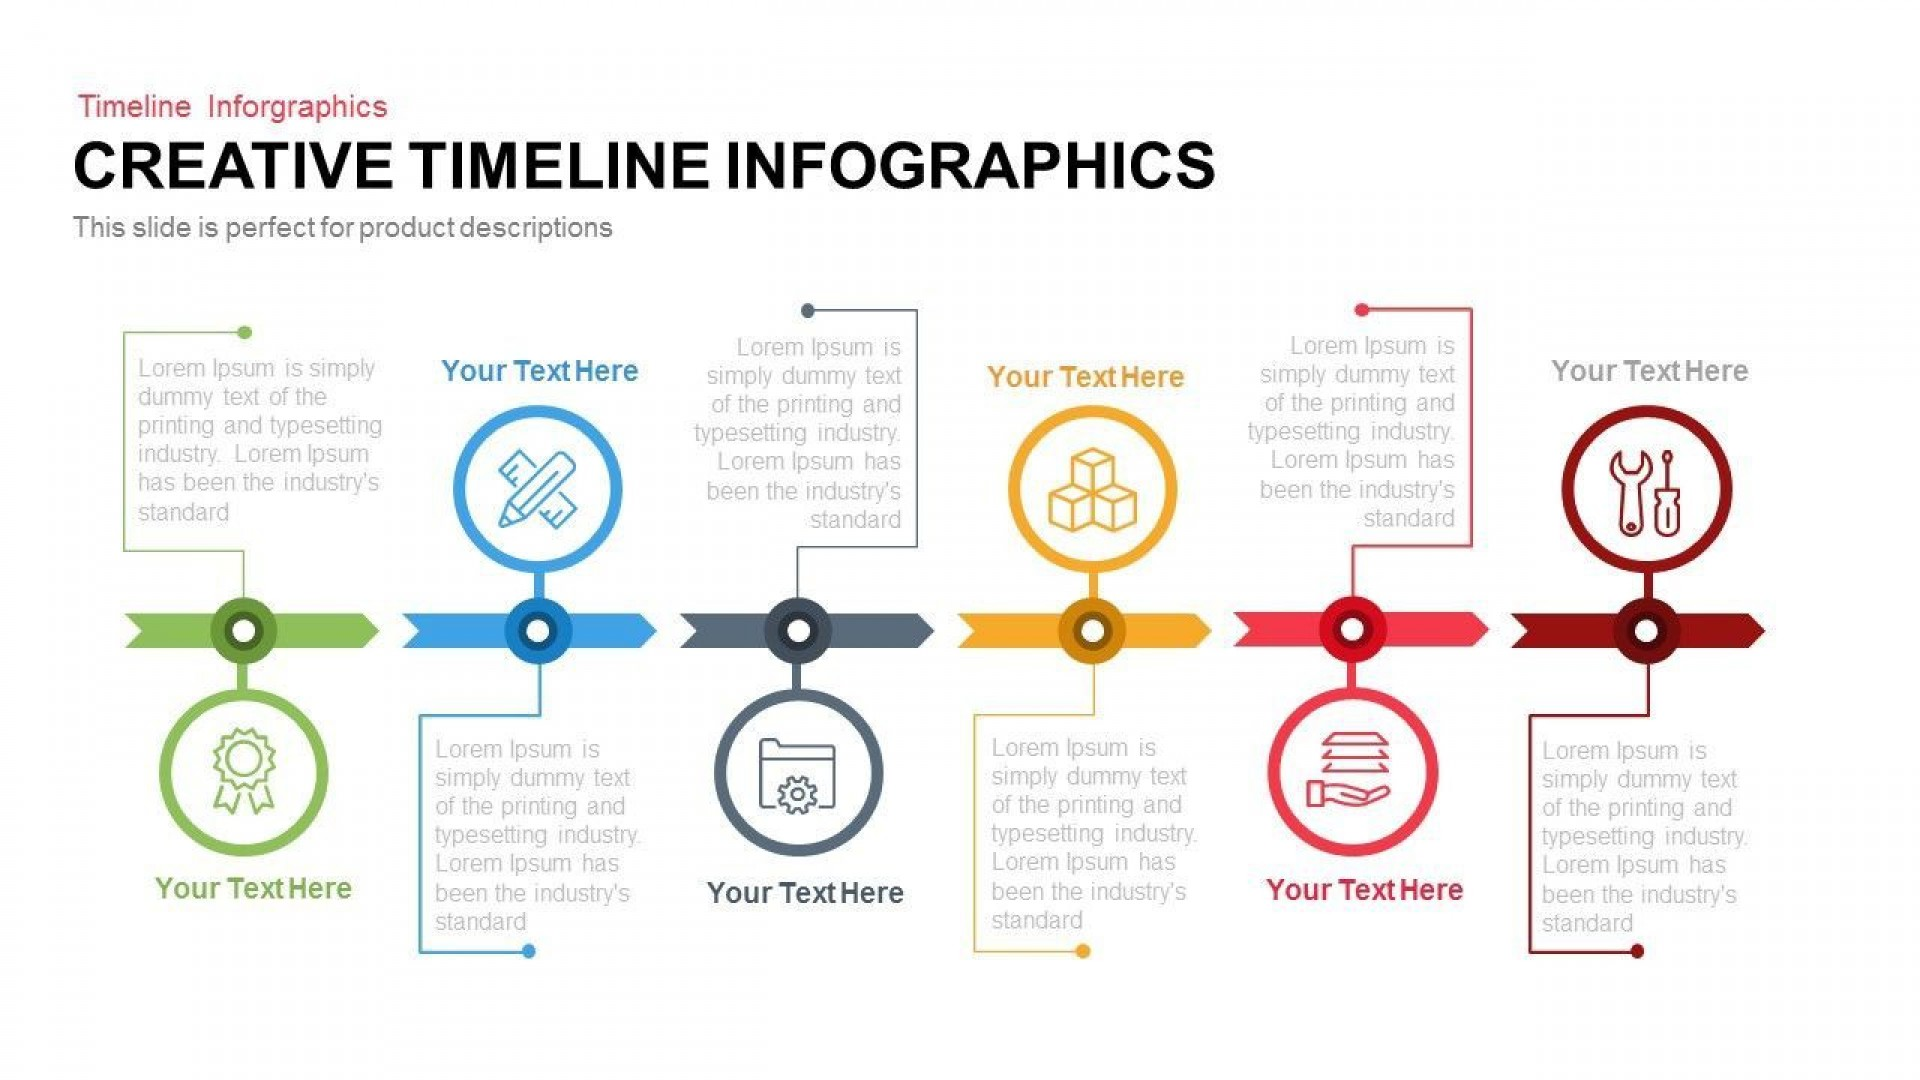 002 Dreaded Timeline Template For Powerpoint High Resolution  Presentation Project Management Mac1920